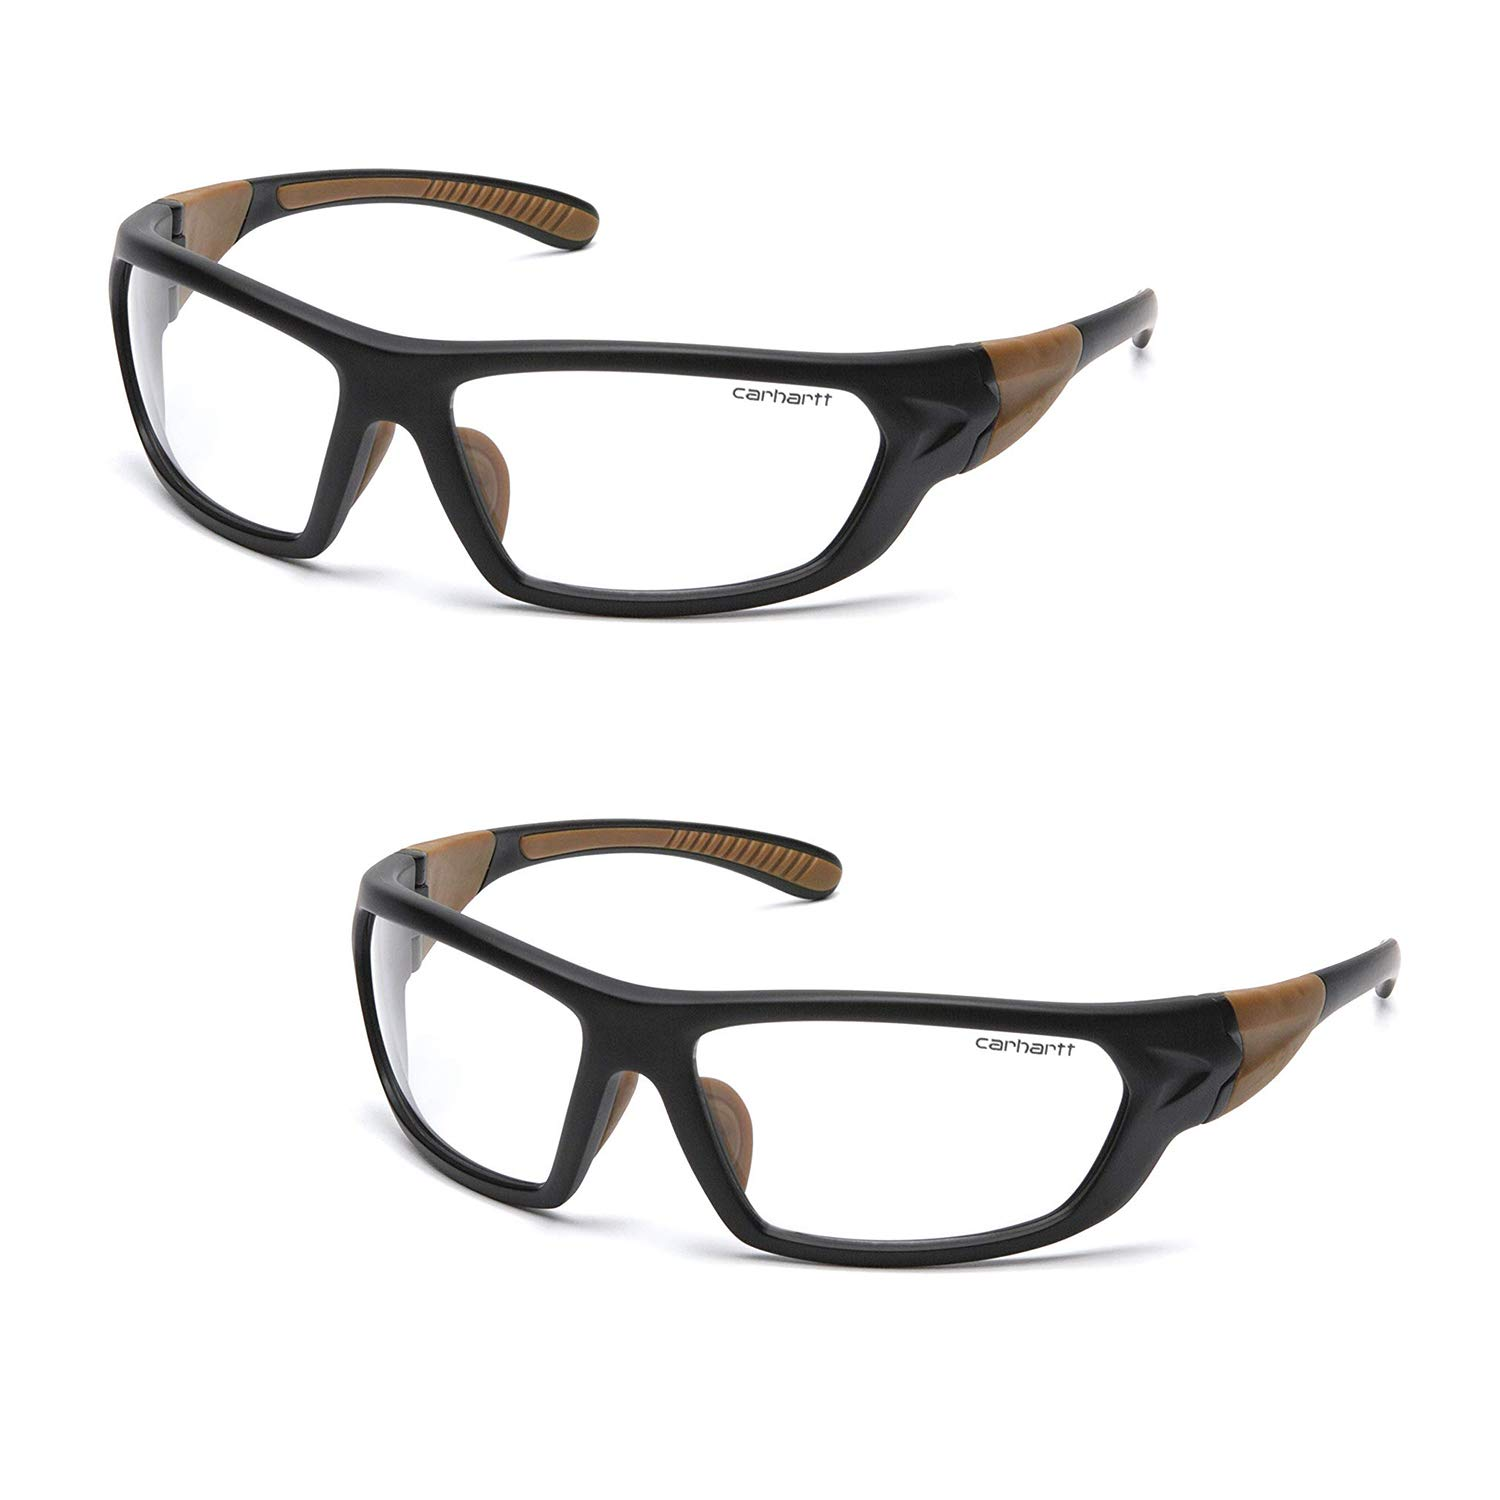 Carhartt Carbondale Safety Glasses with Clear Anti-Fog Lens (2 Pack) by Carhartt (Image #6)